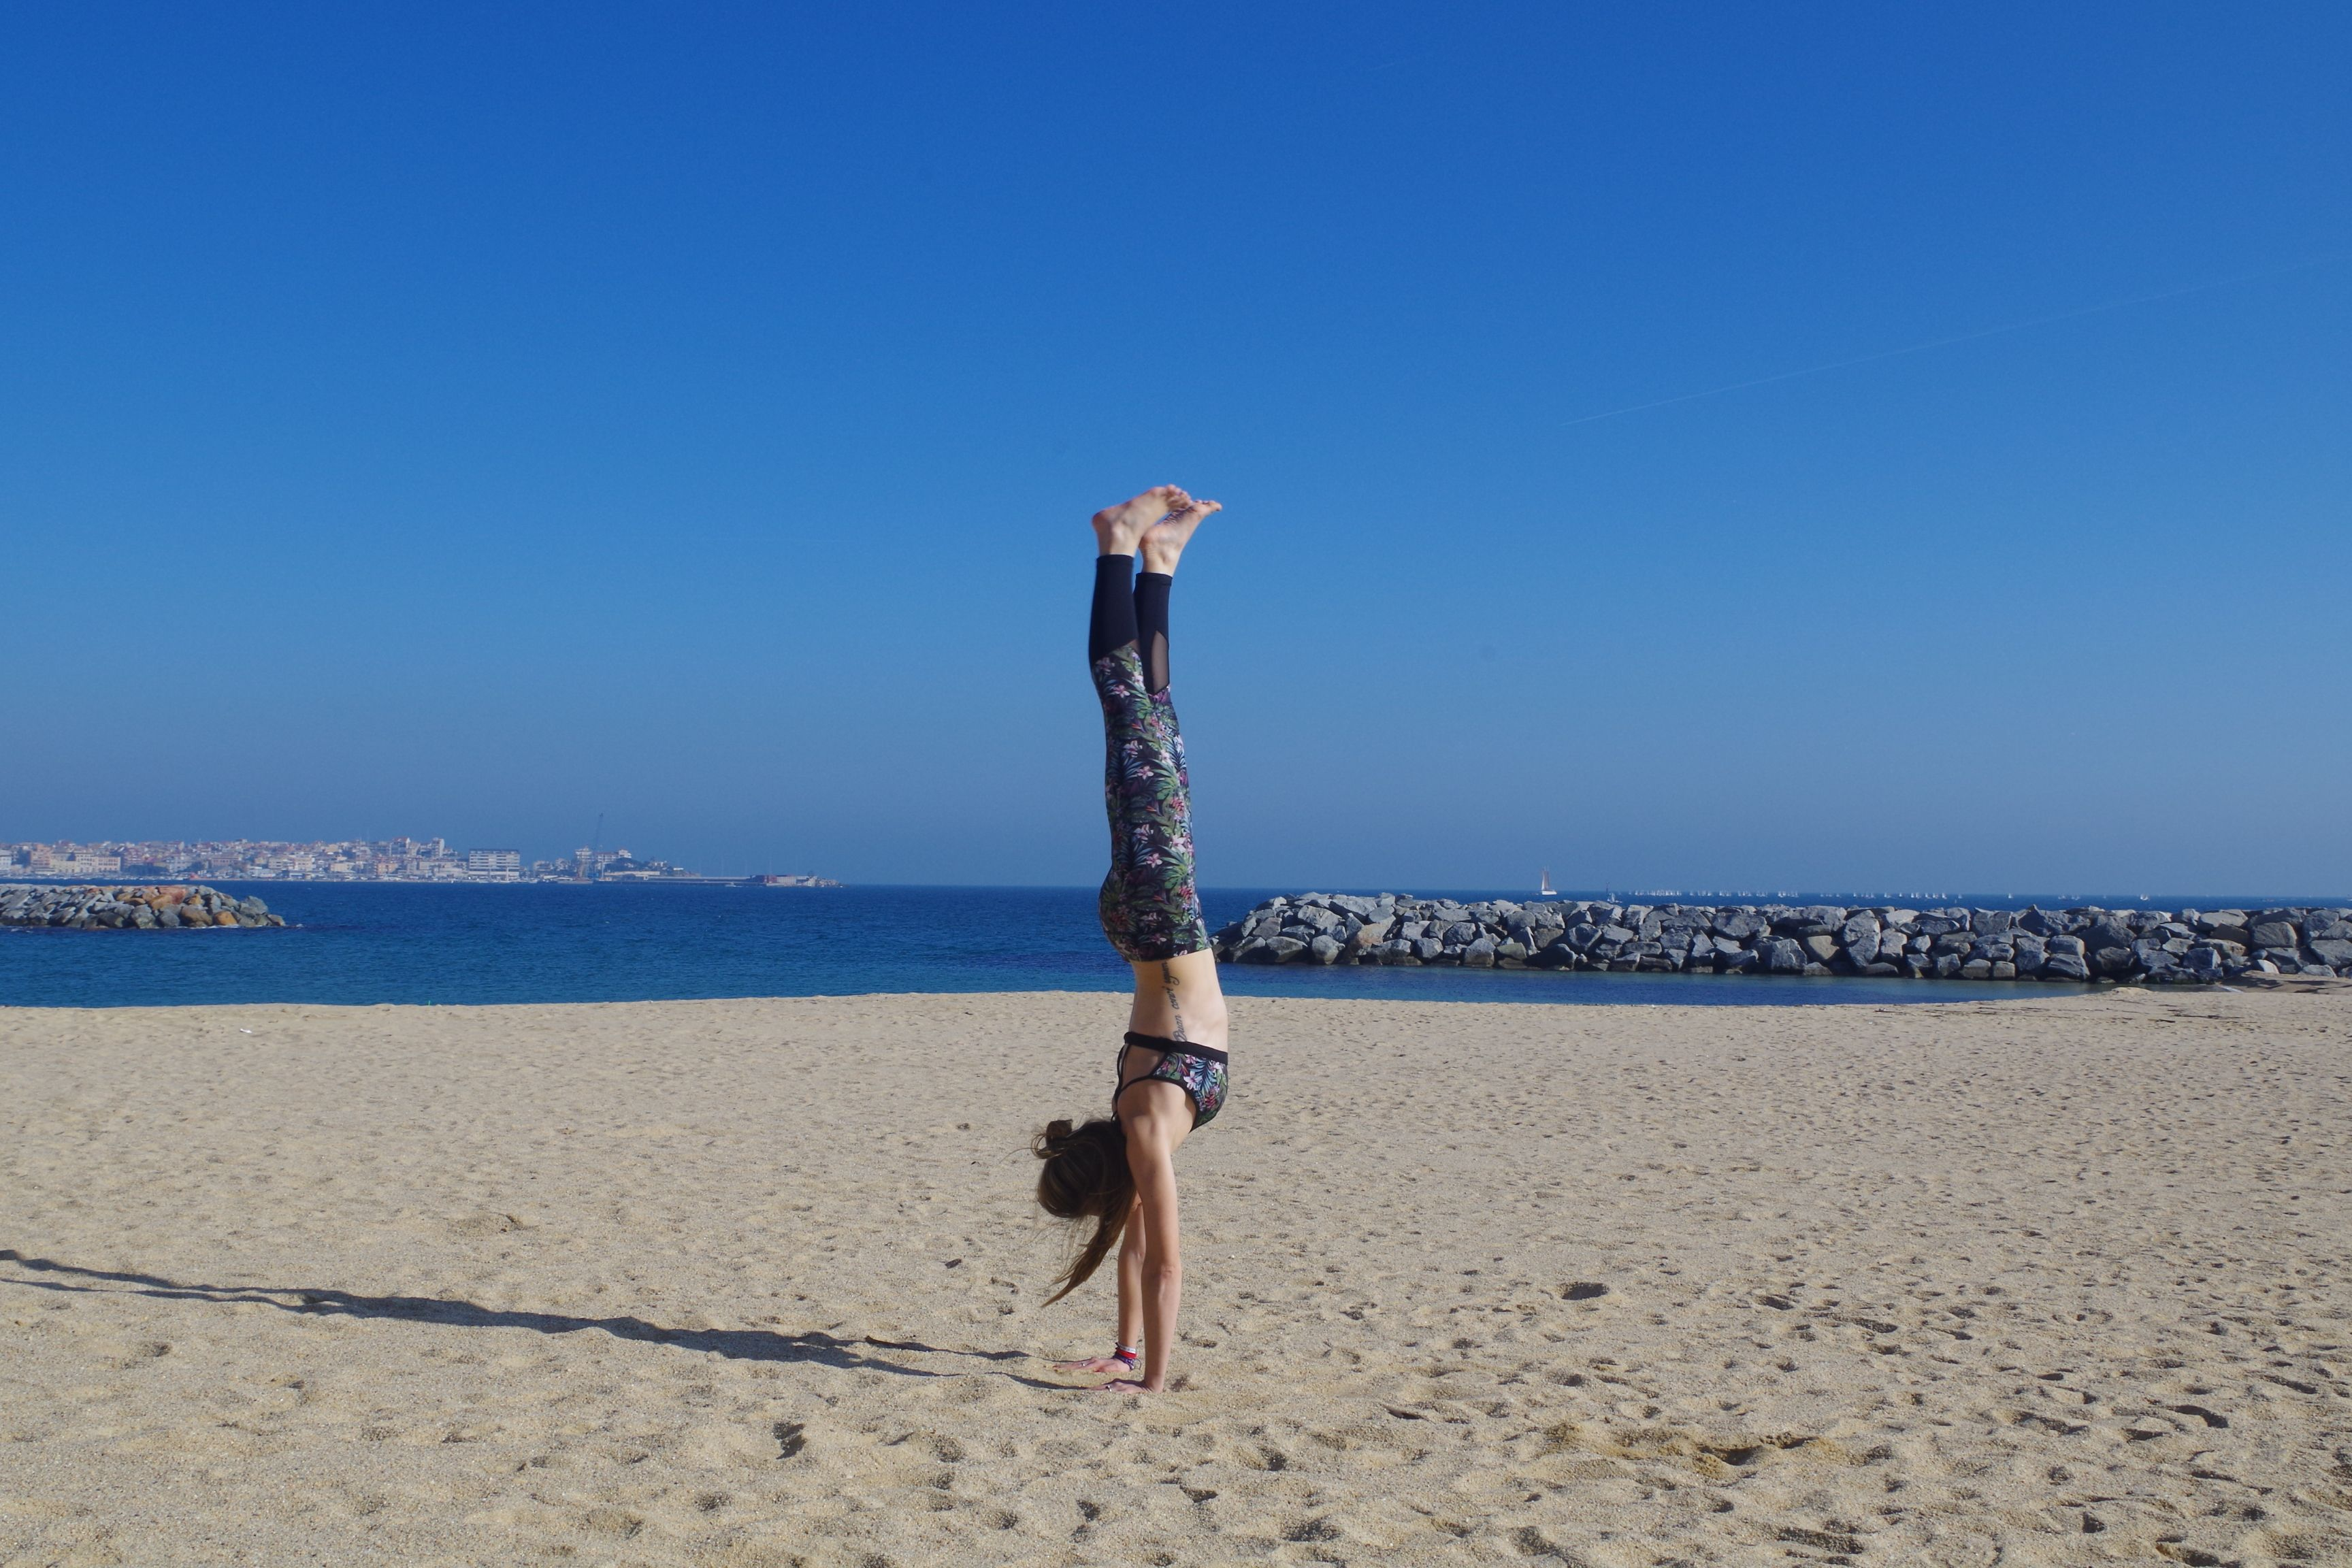 My first correct handstand